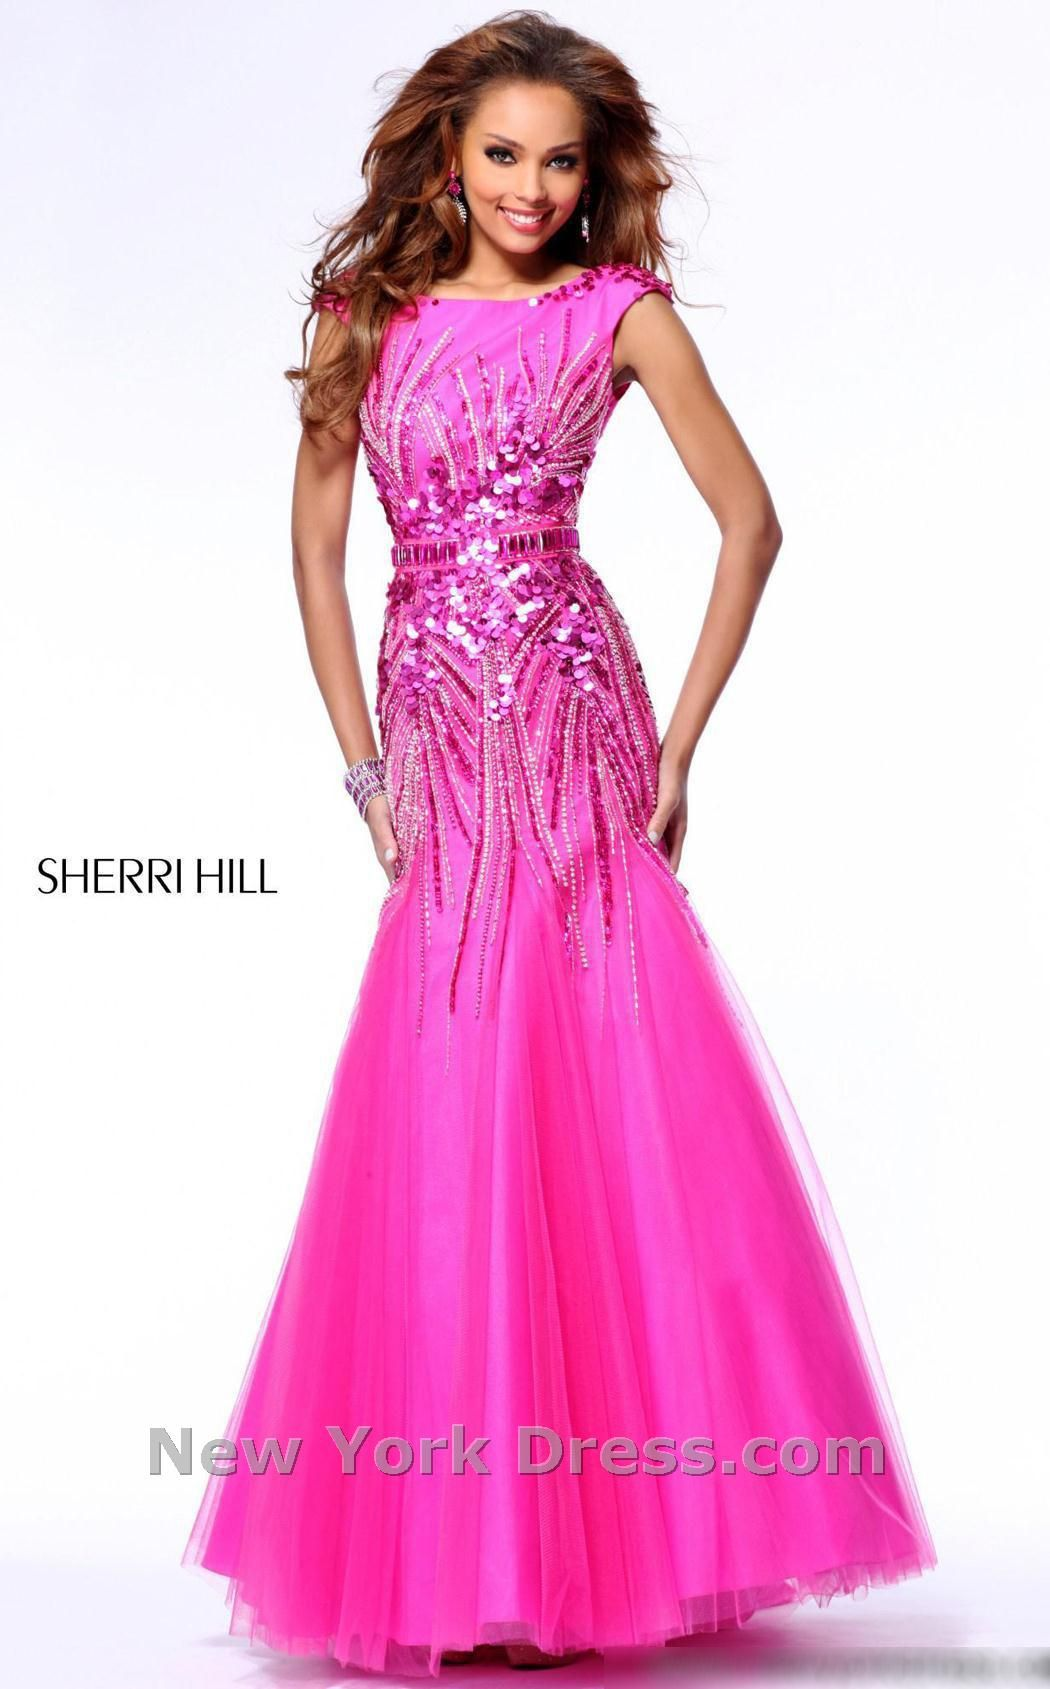 Sherri hill dress pageants gowns and bodice